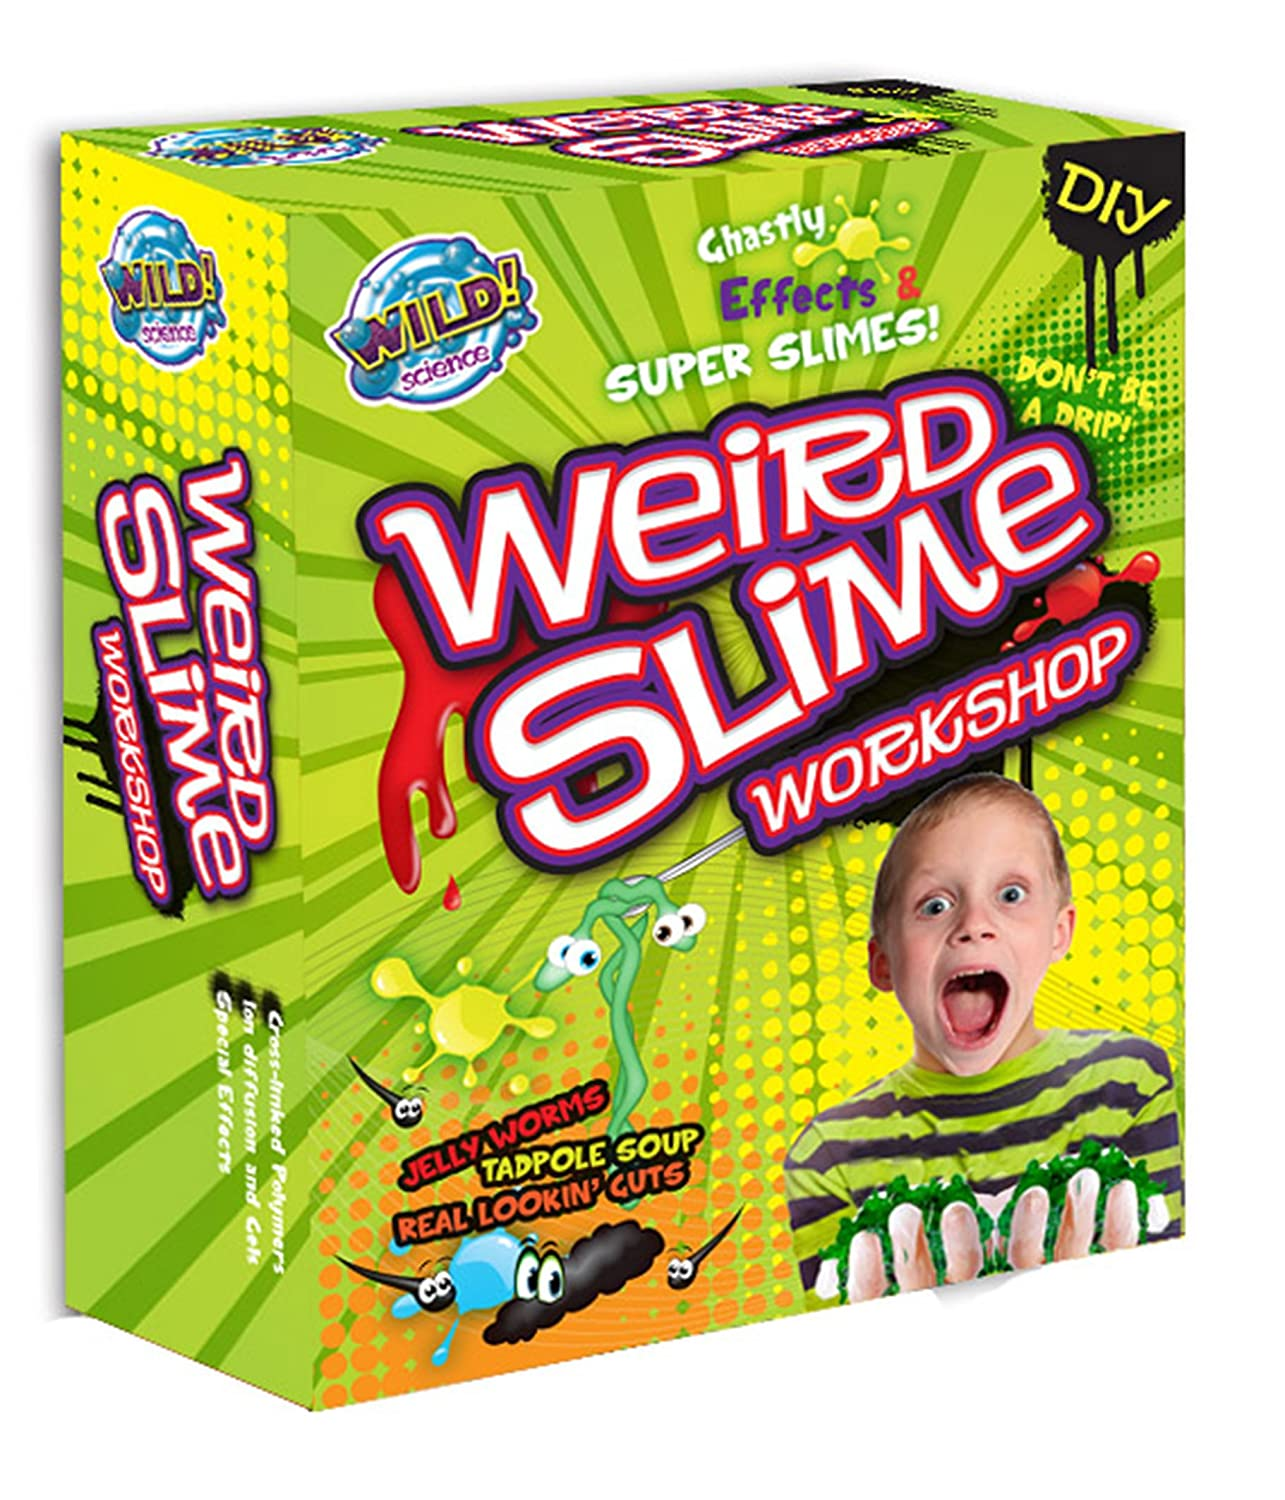 Wild Science Weird Slime Laboratory Amazon Toys & Games